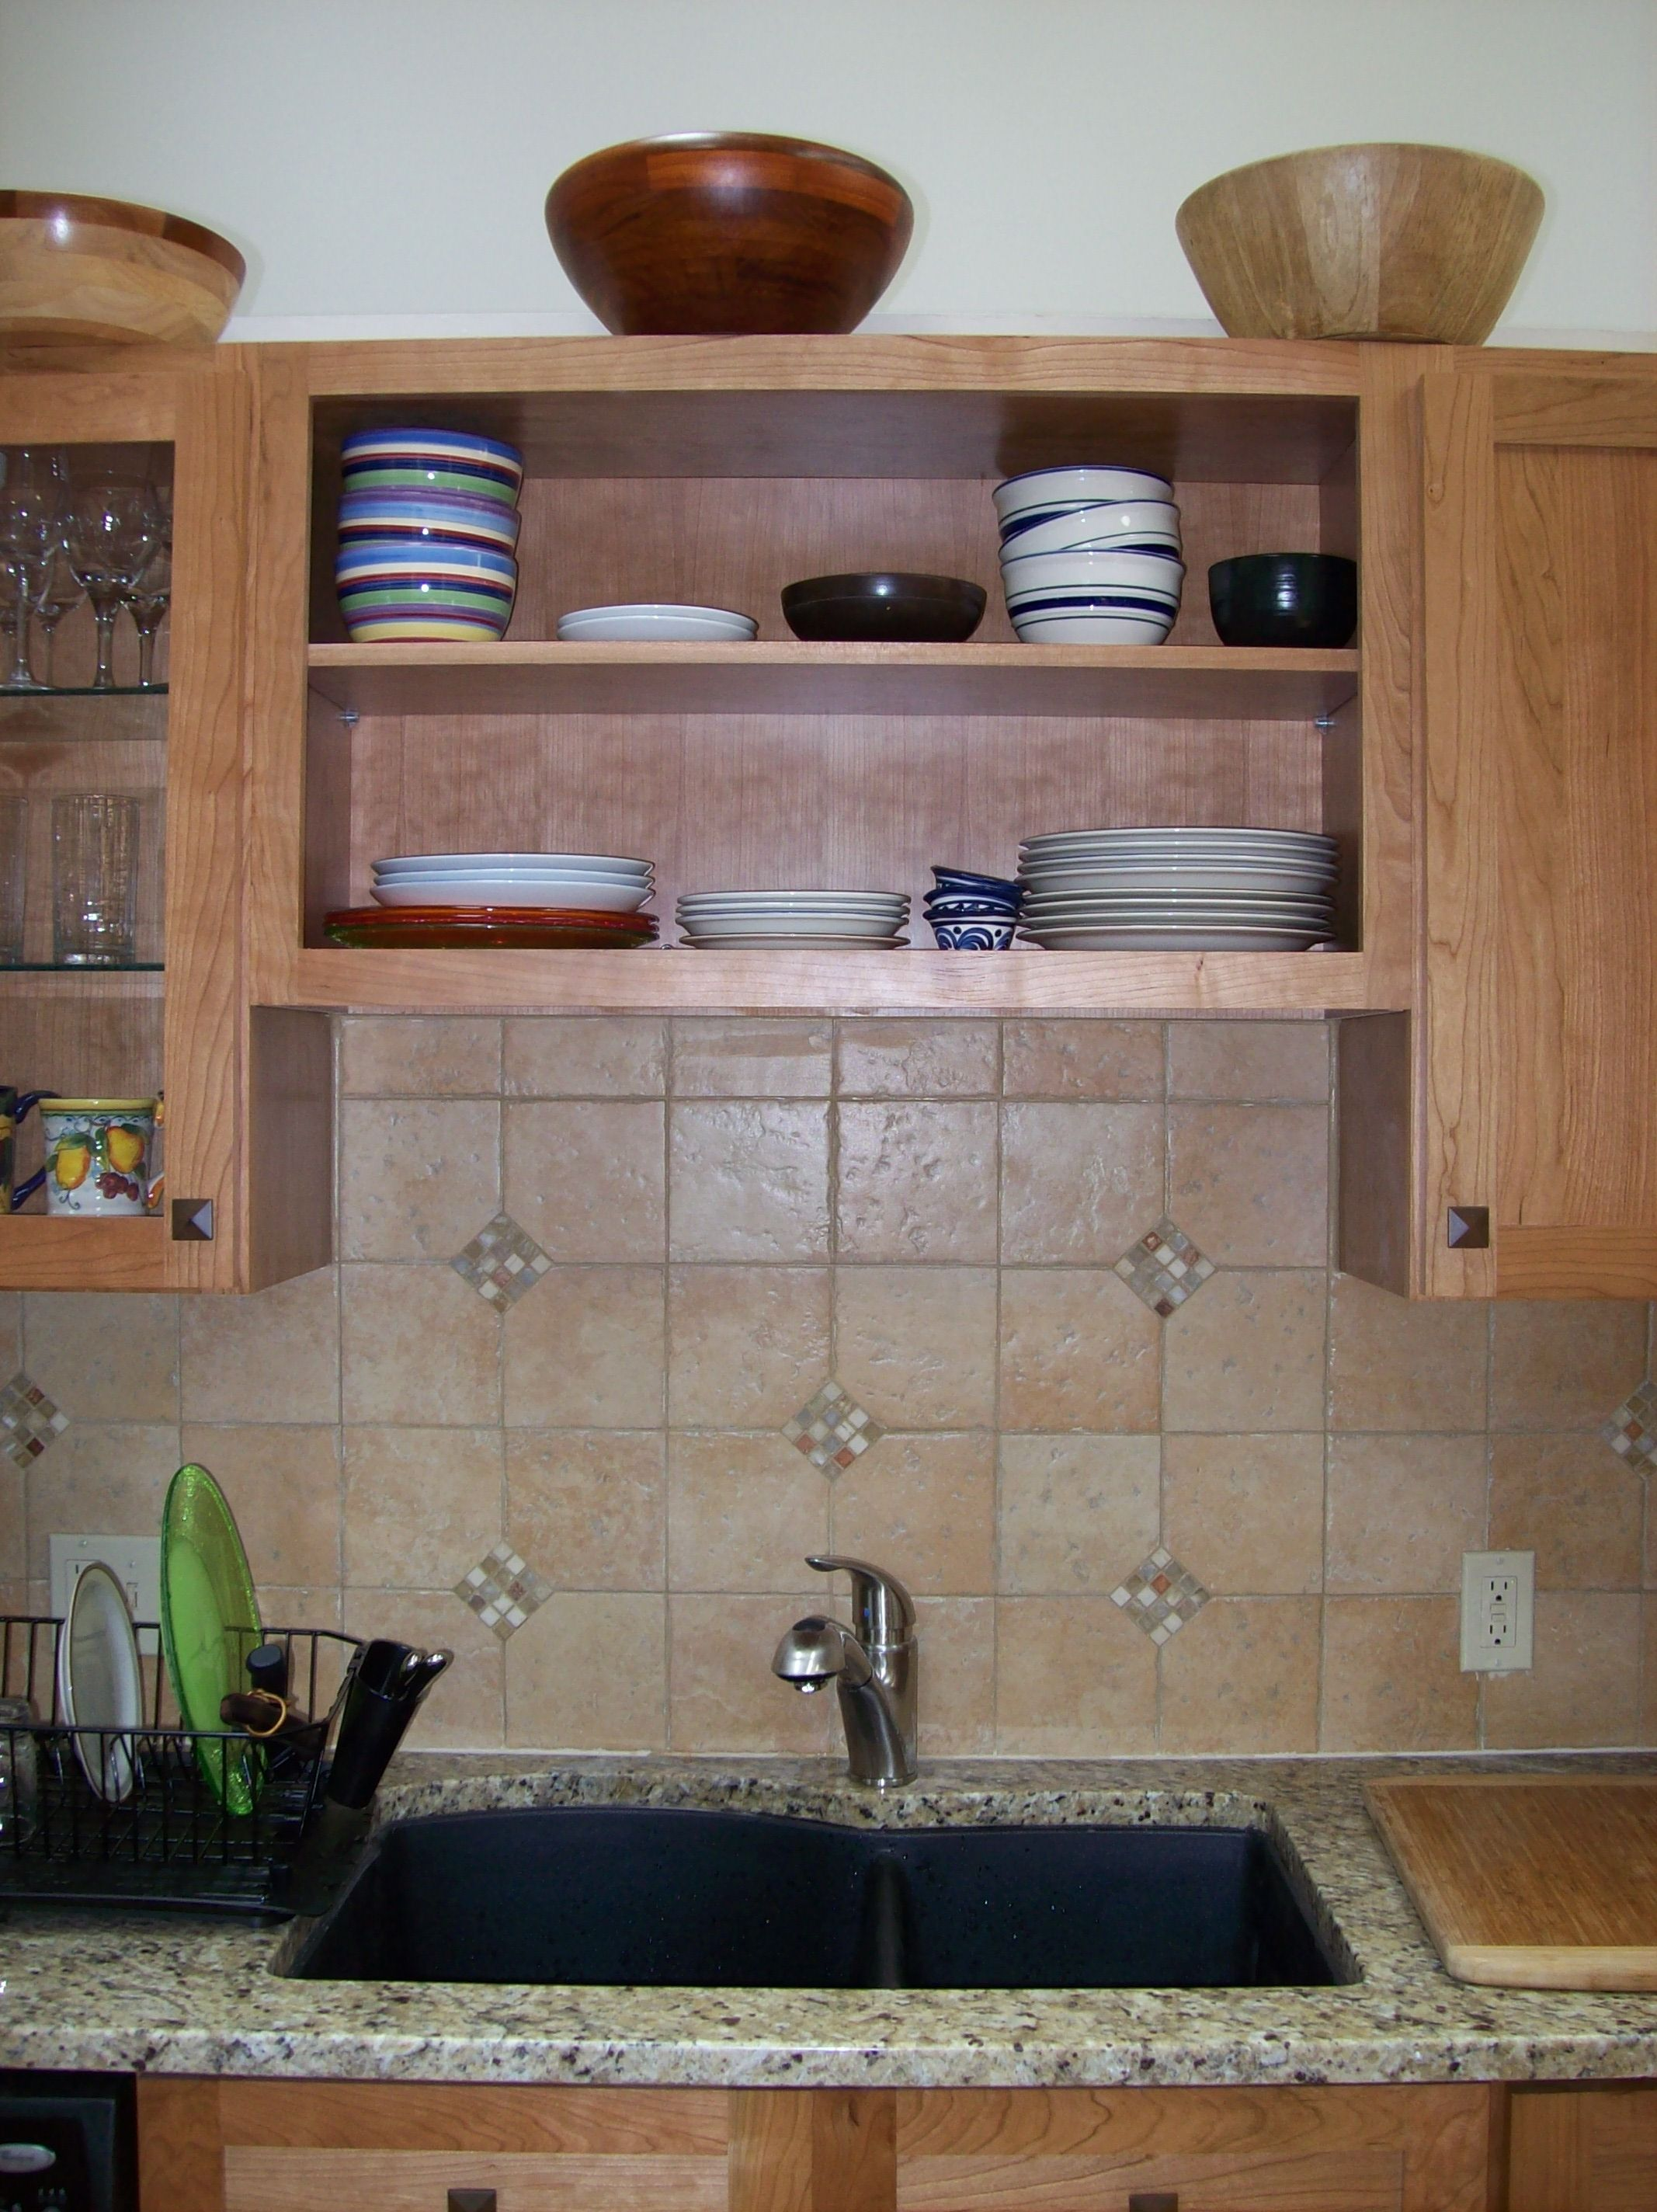 Cherry cabinets, stone accent (With images)   Cherry ...